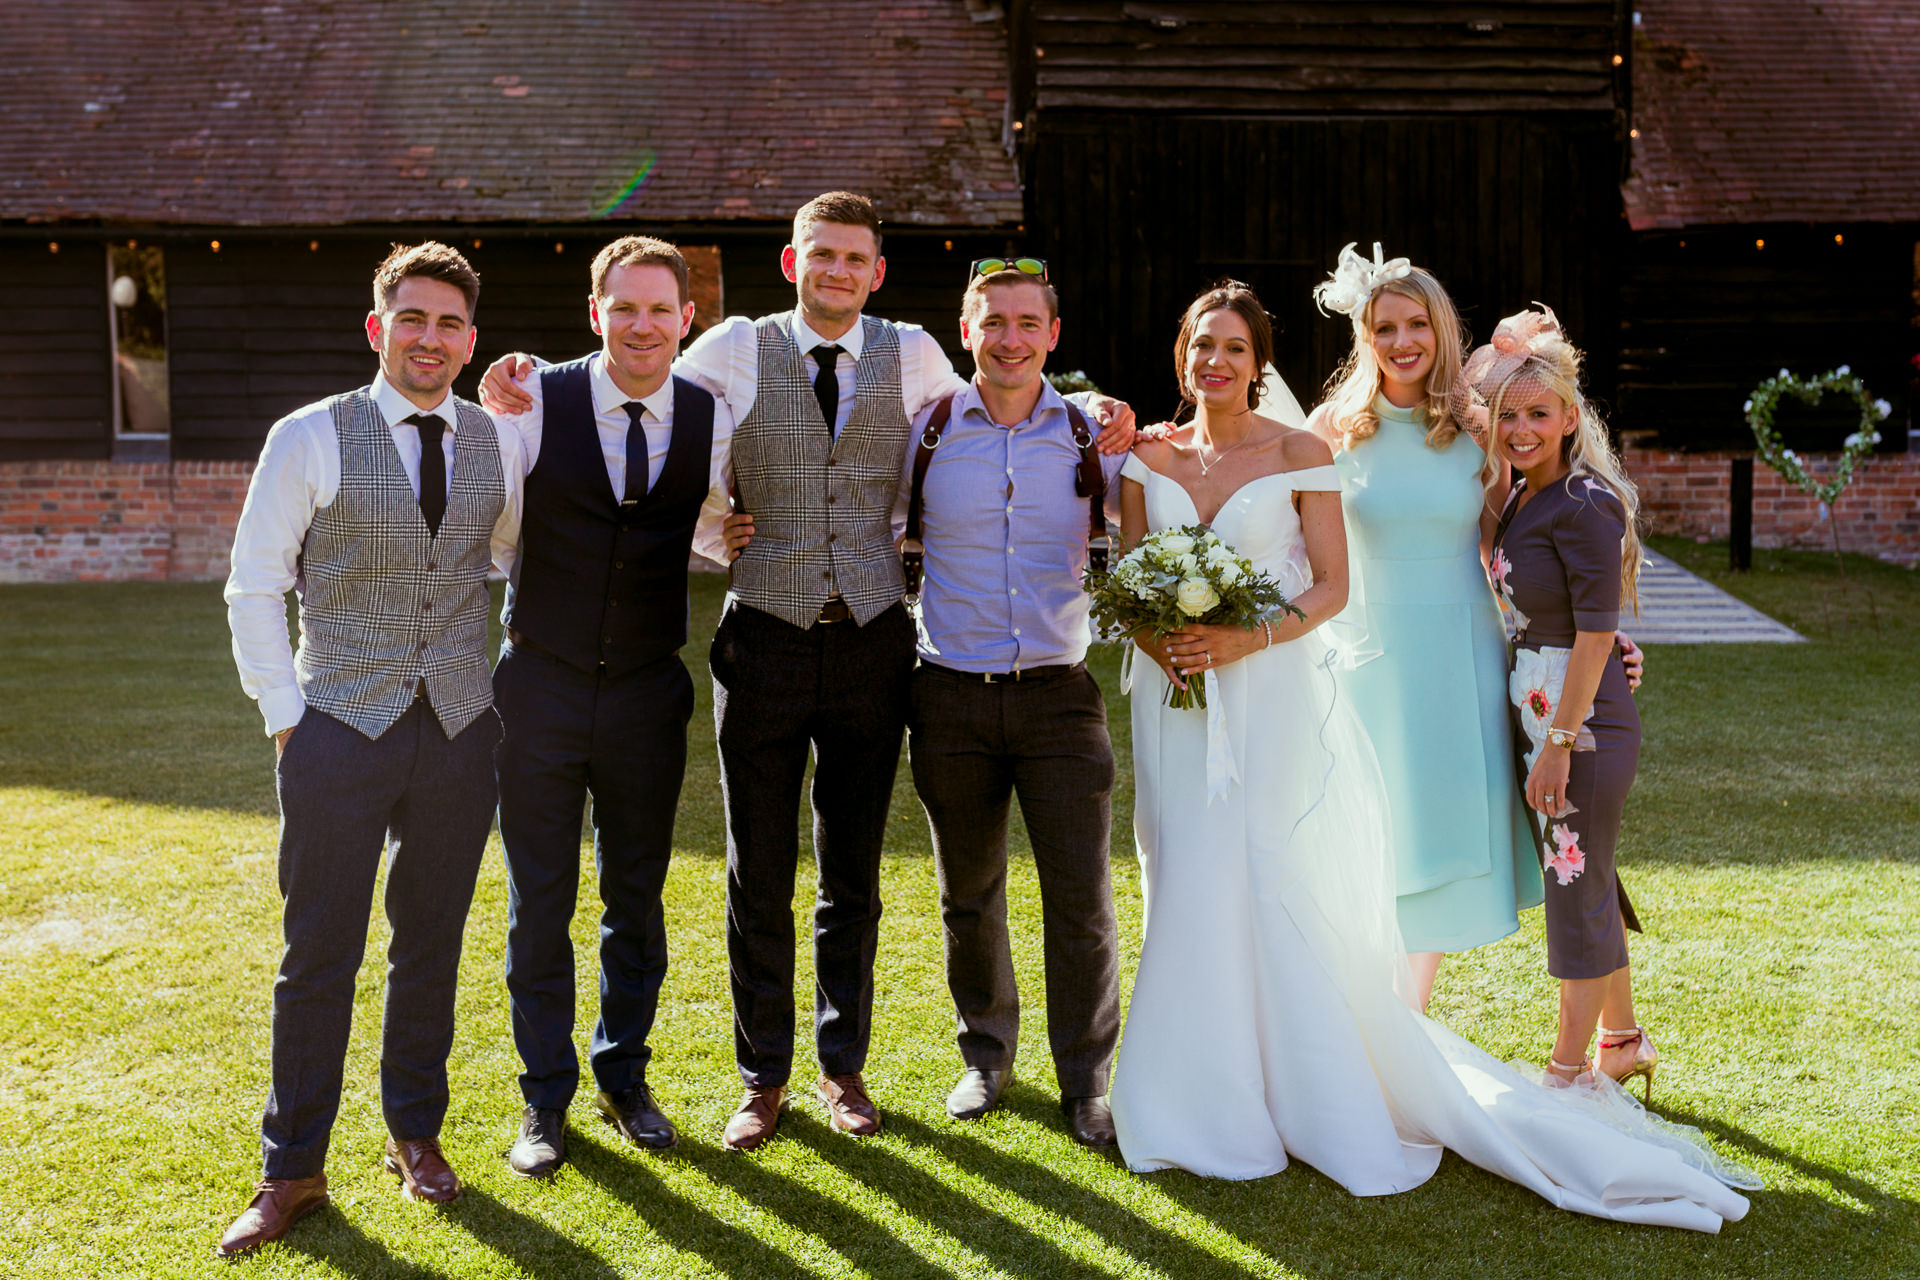 potters instinct photography with 3 of his wedding couples at one wedding